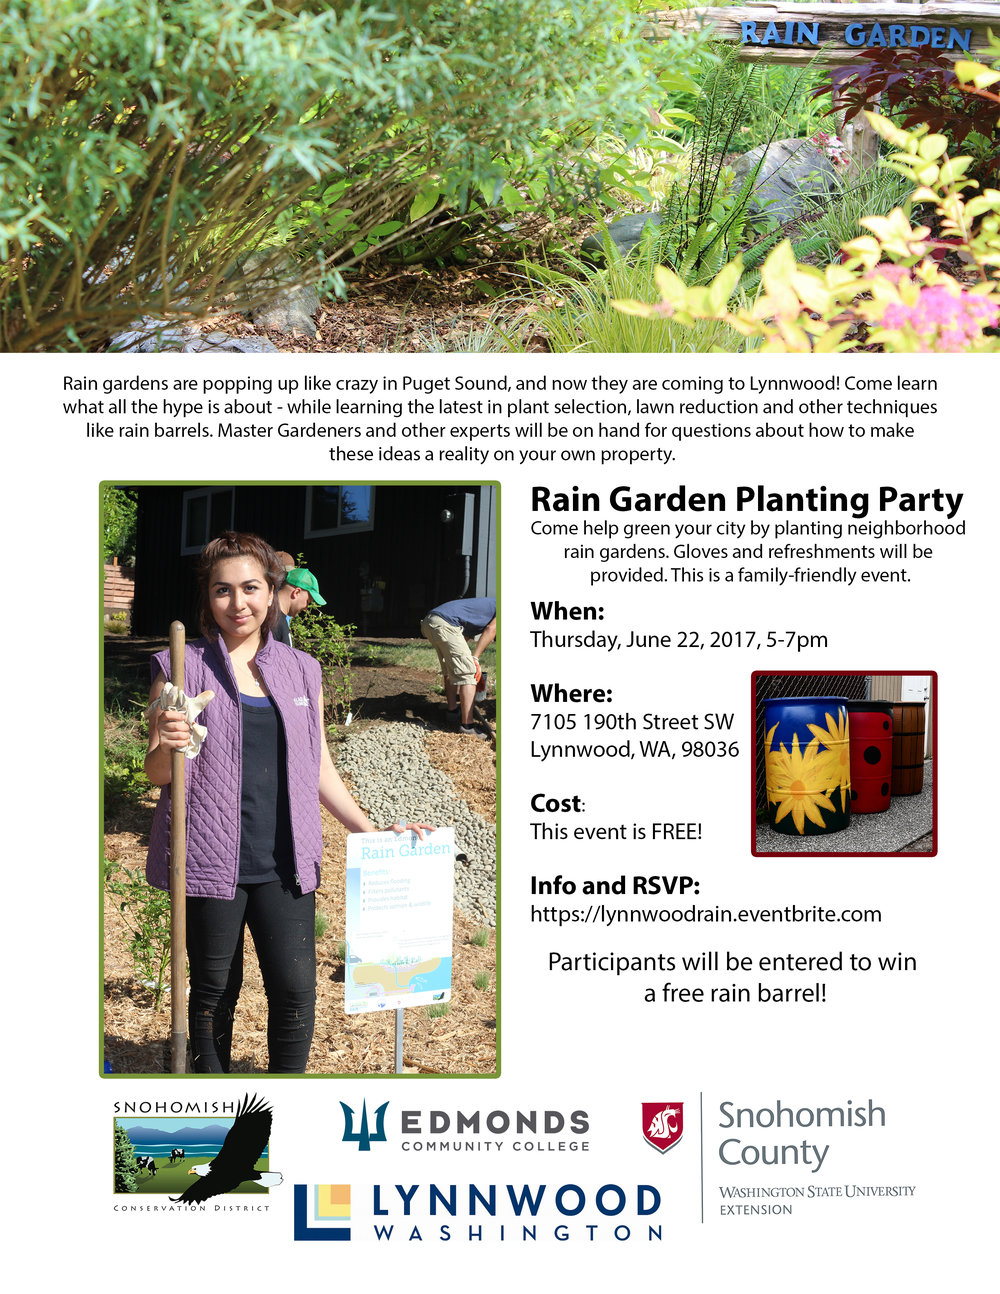 Rain Garden Party Flyer for June 22, 2017